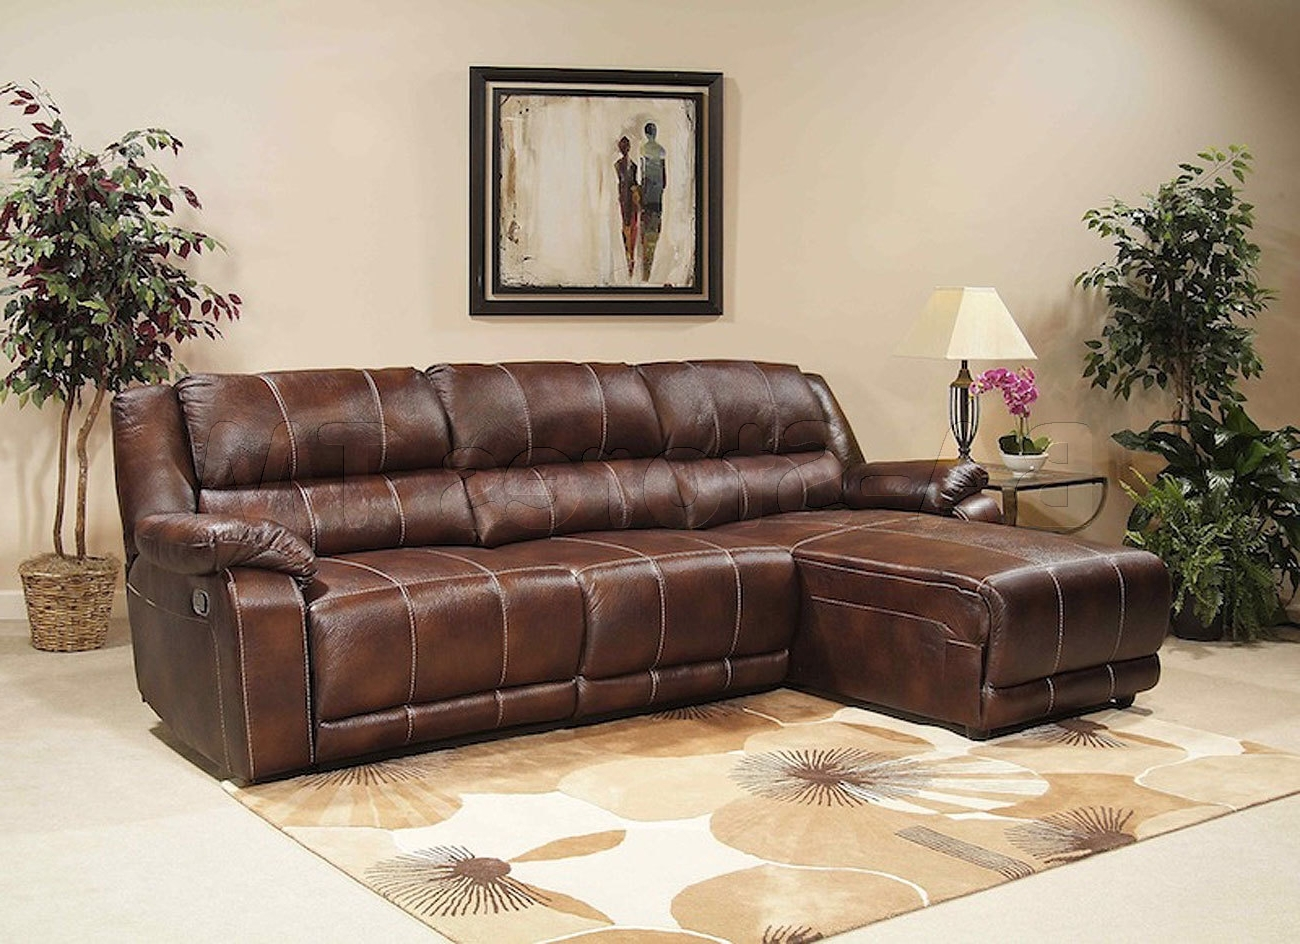 An Overview Of Sectional Sofas With Recliner – Elites Home Decor Intended For Most Recent Reclining Sofas With Chaise (View 2 of 15)